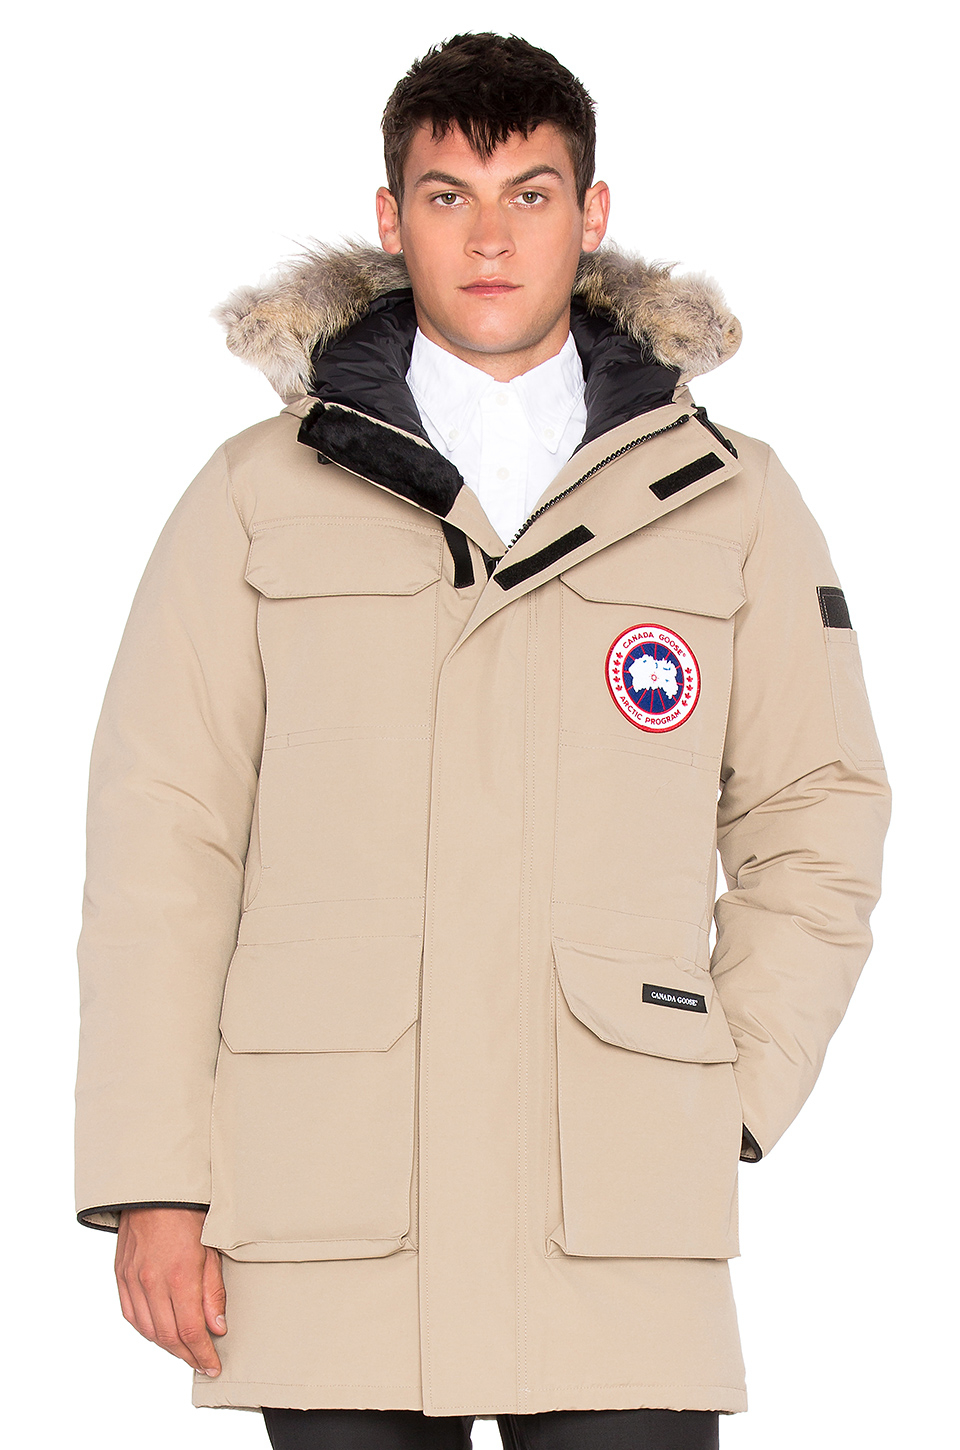 best canada goose parka for skiing